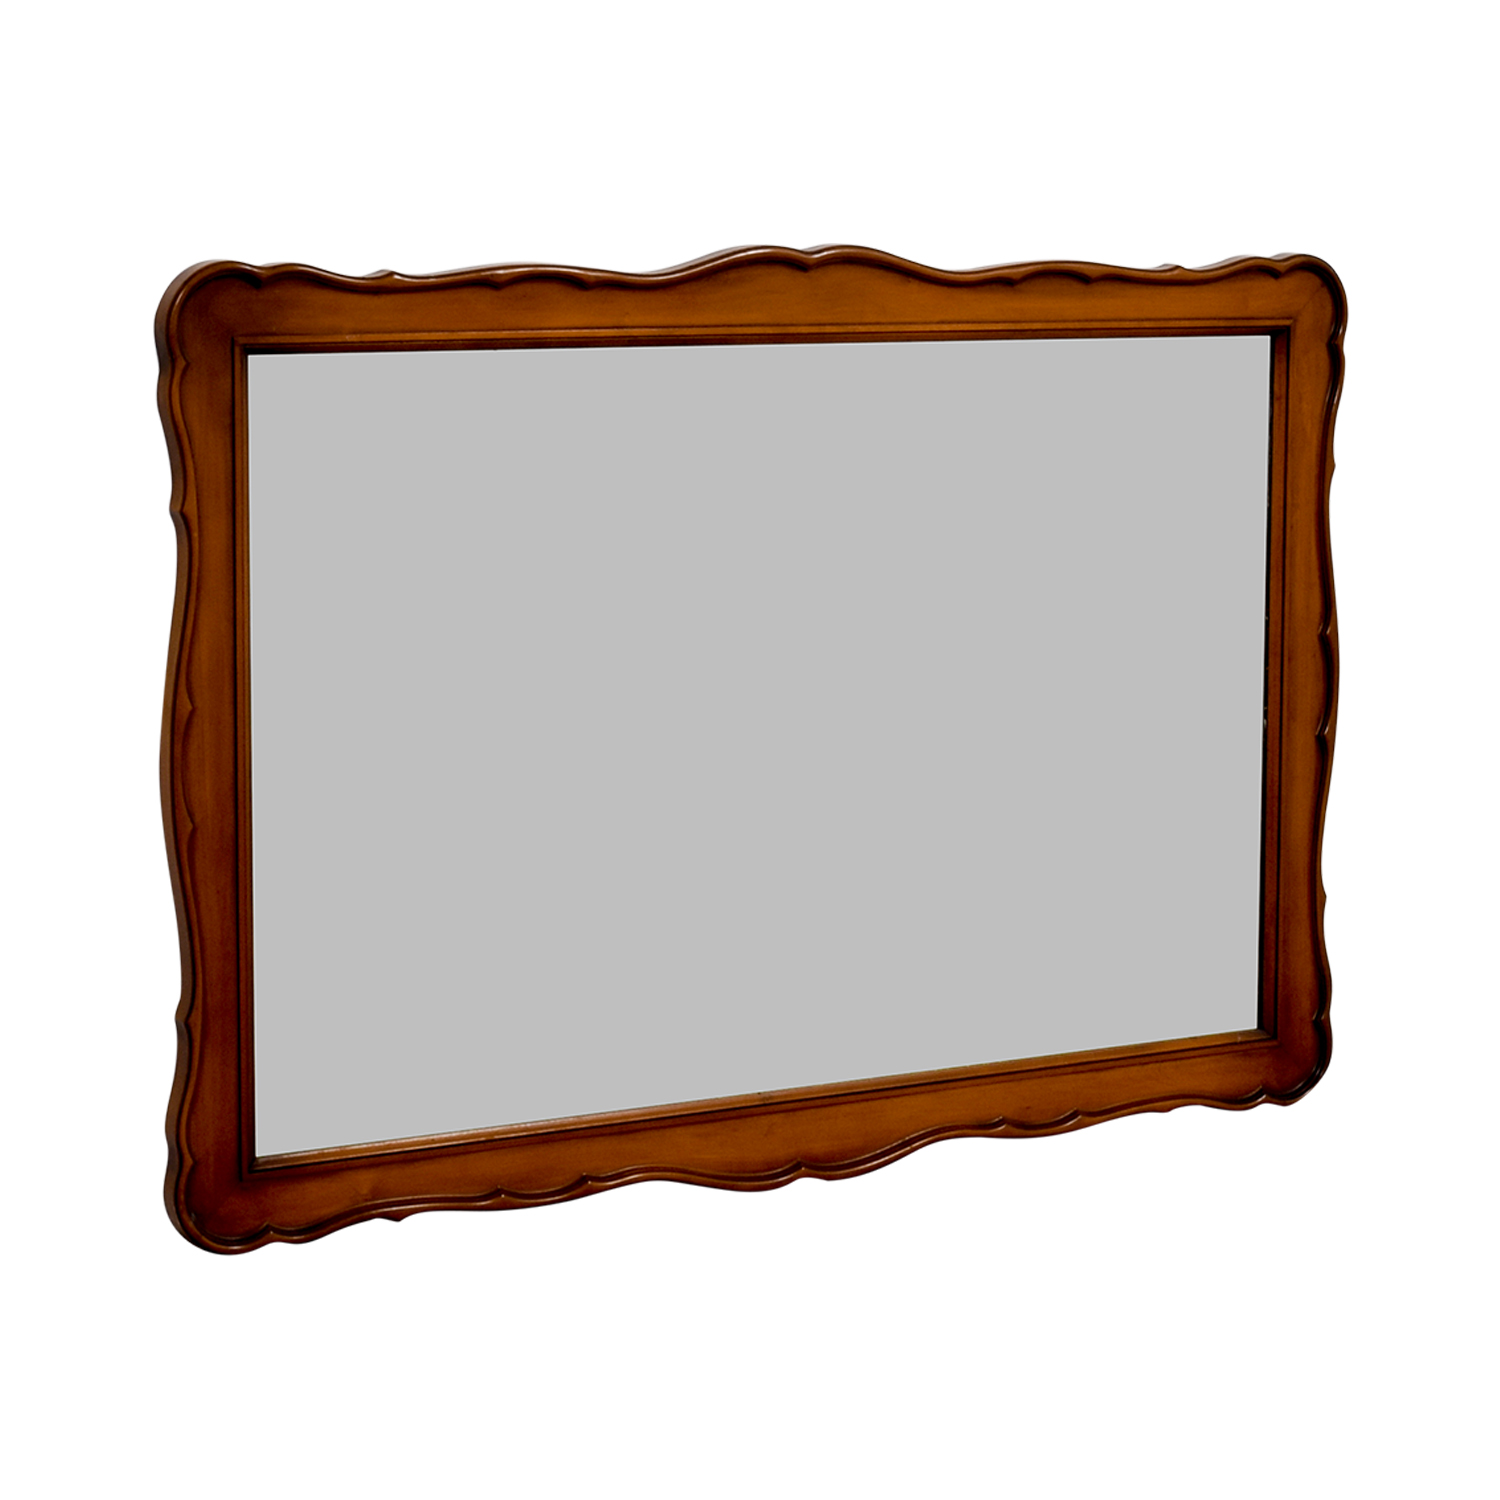 White Fine Furniture White Fine Furniture Wood Framed Mirror on sale